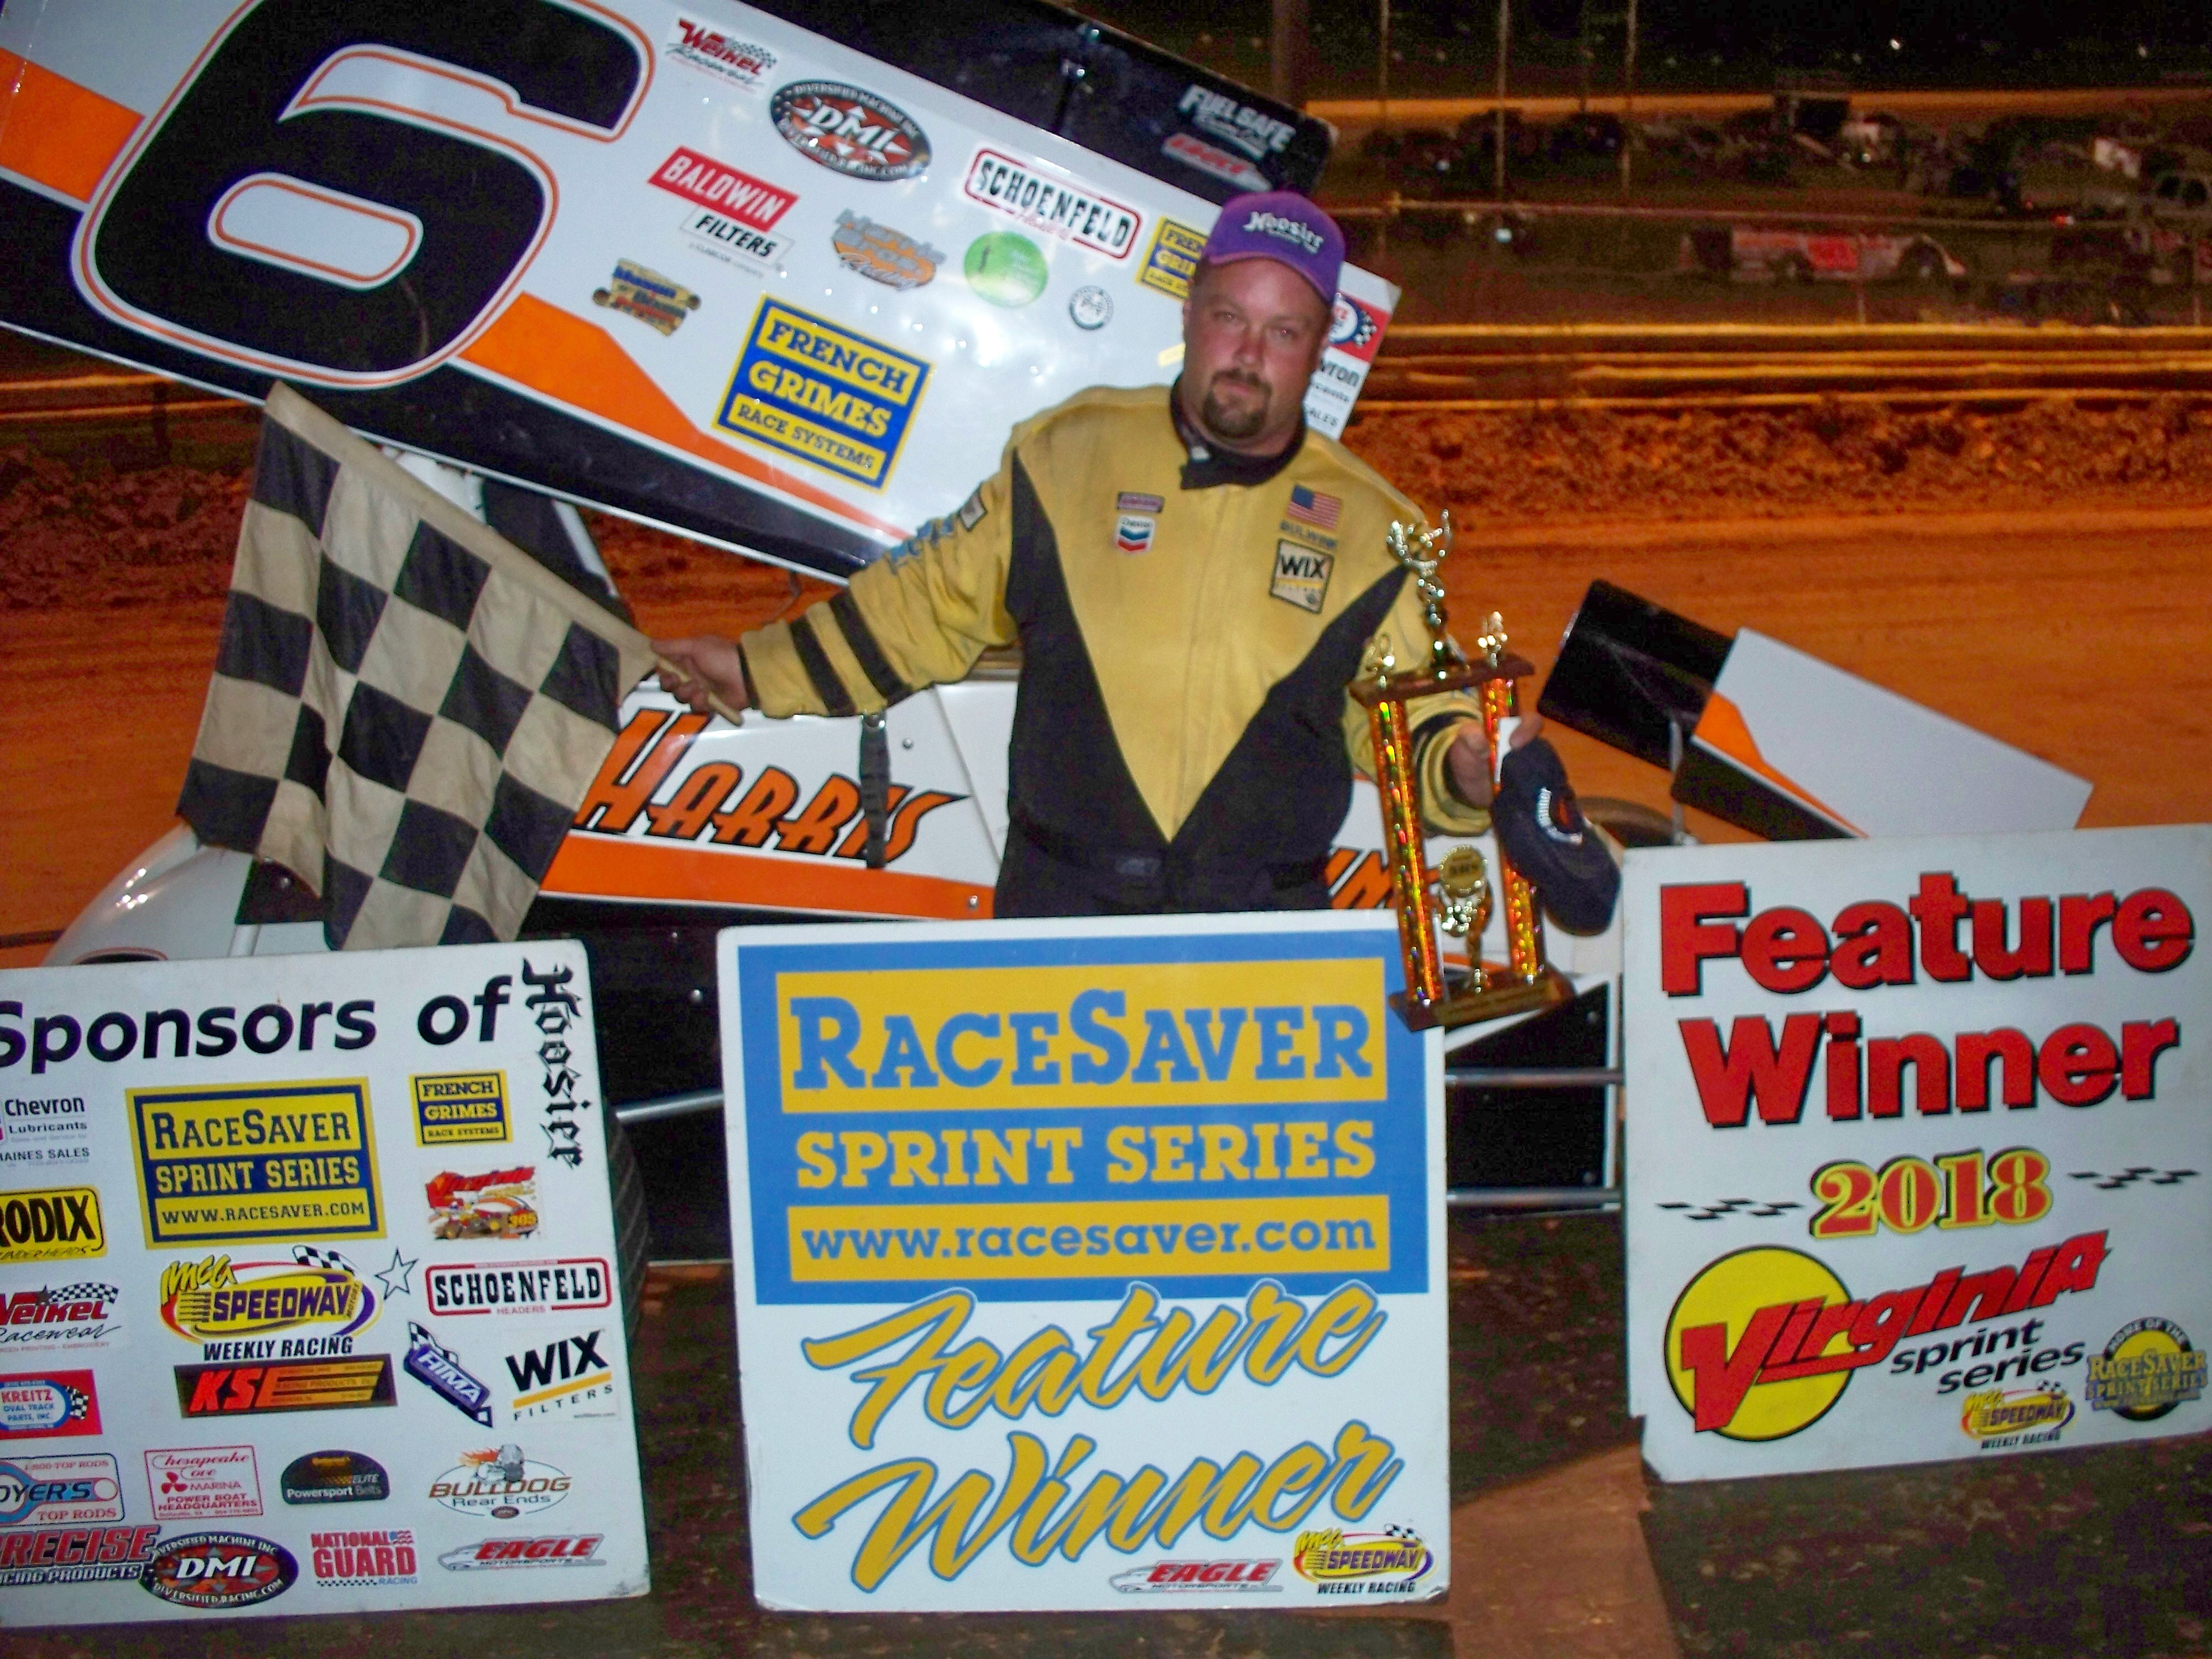 Tony Harris gets first win of the year with VSS at Natural Bridge